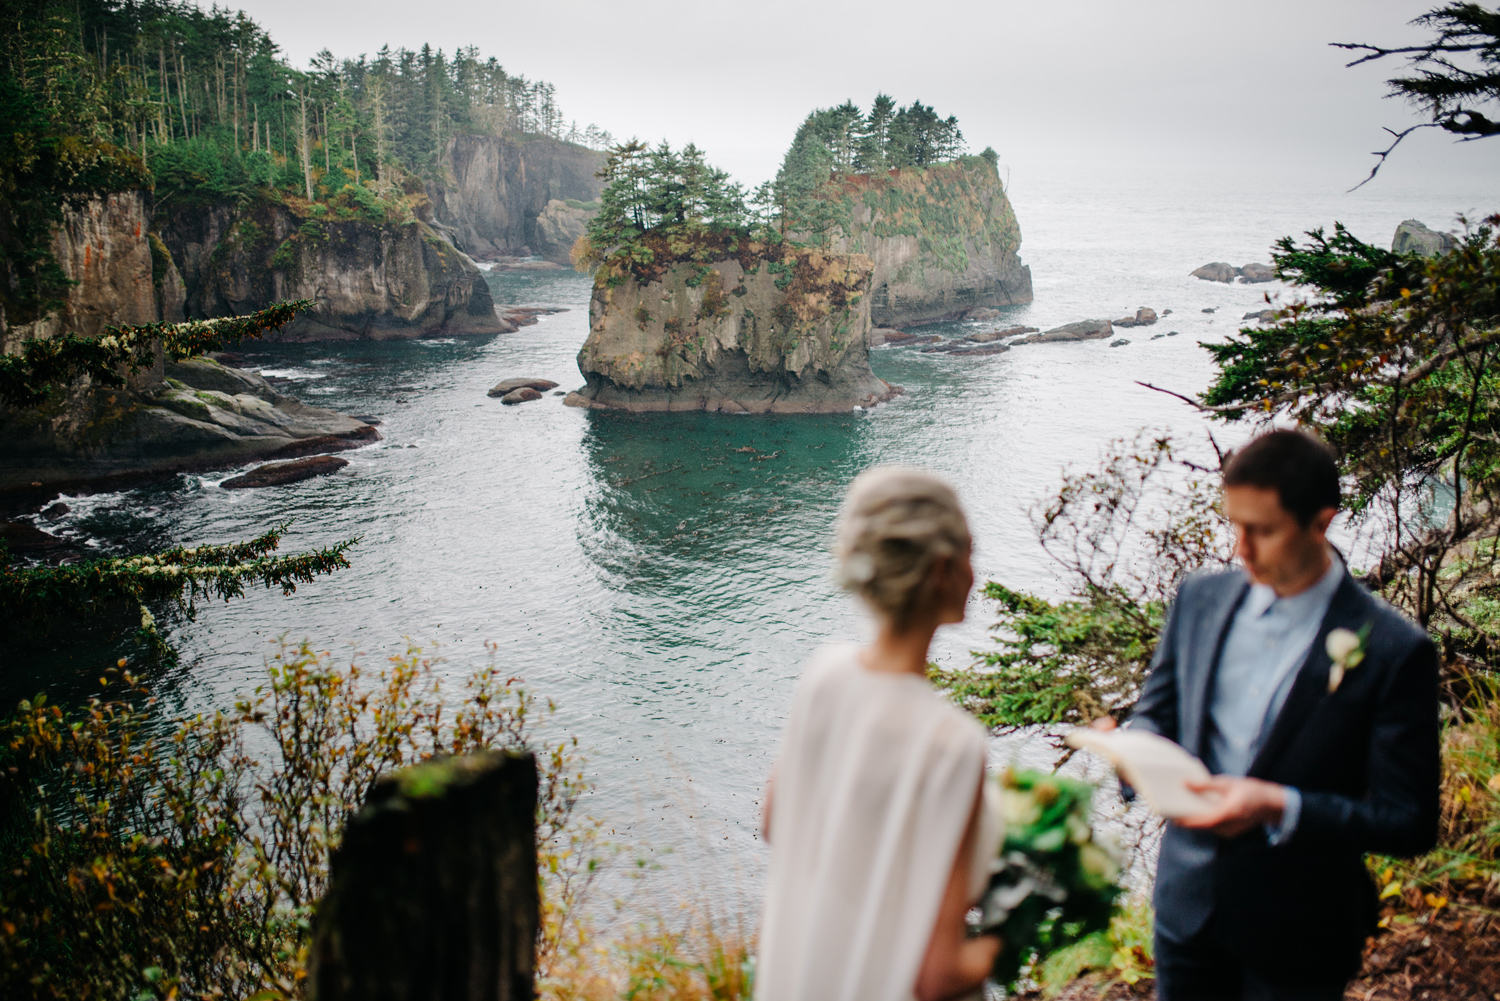 012-pnw-coastal-elopement-at-cape-flattery-by-seattle-wedding-photographer-ryan-flynn.jpg